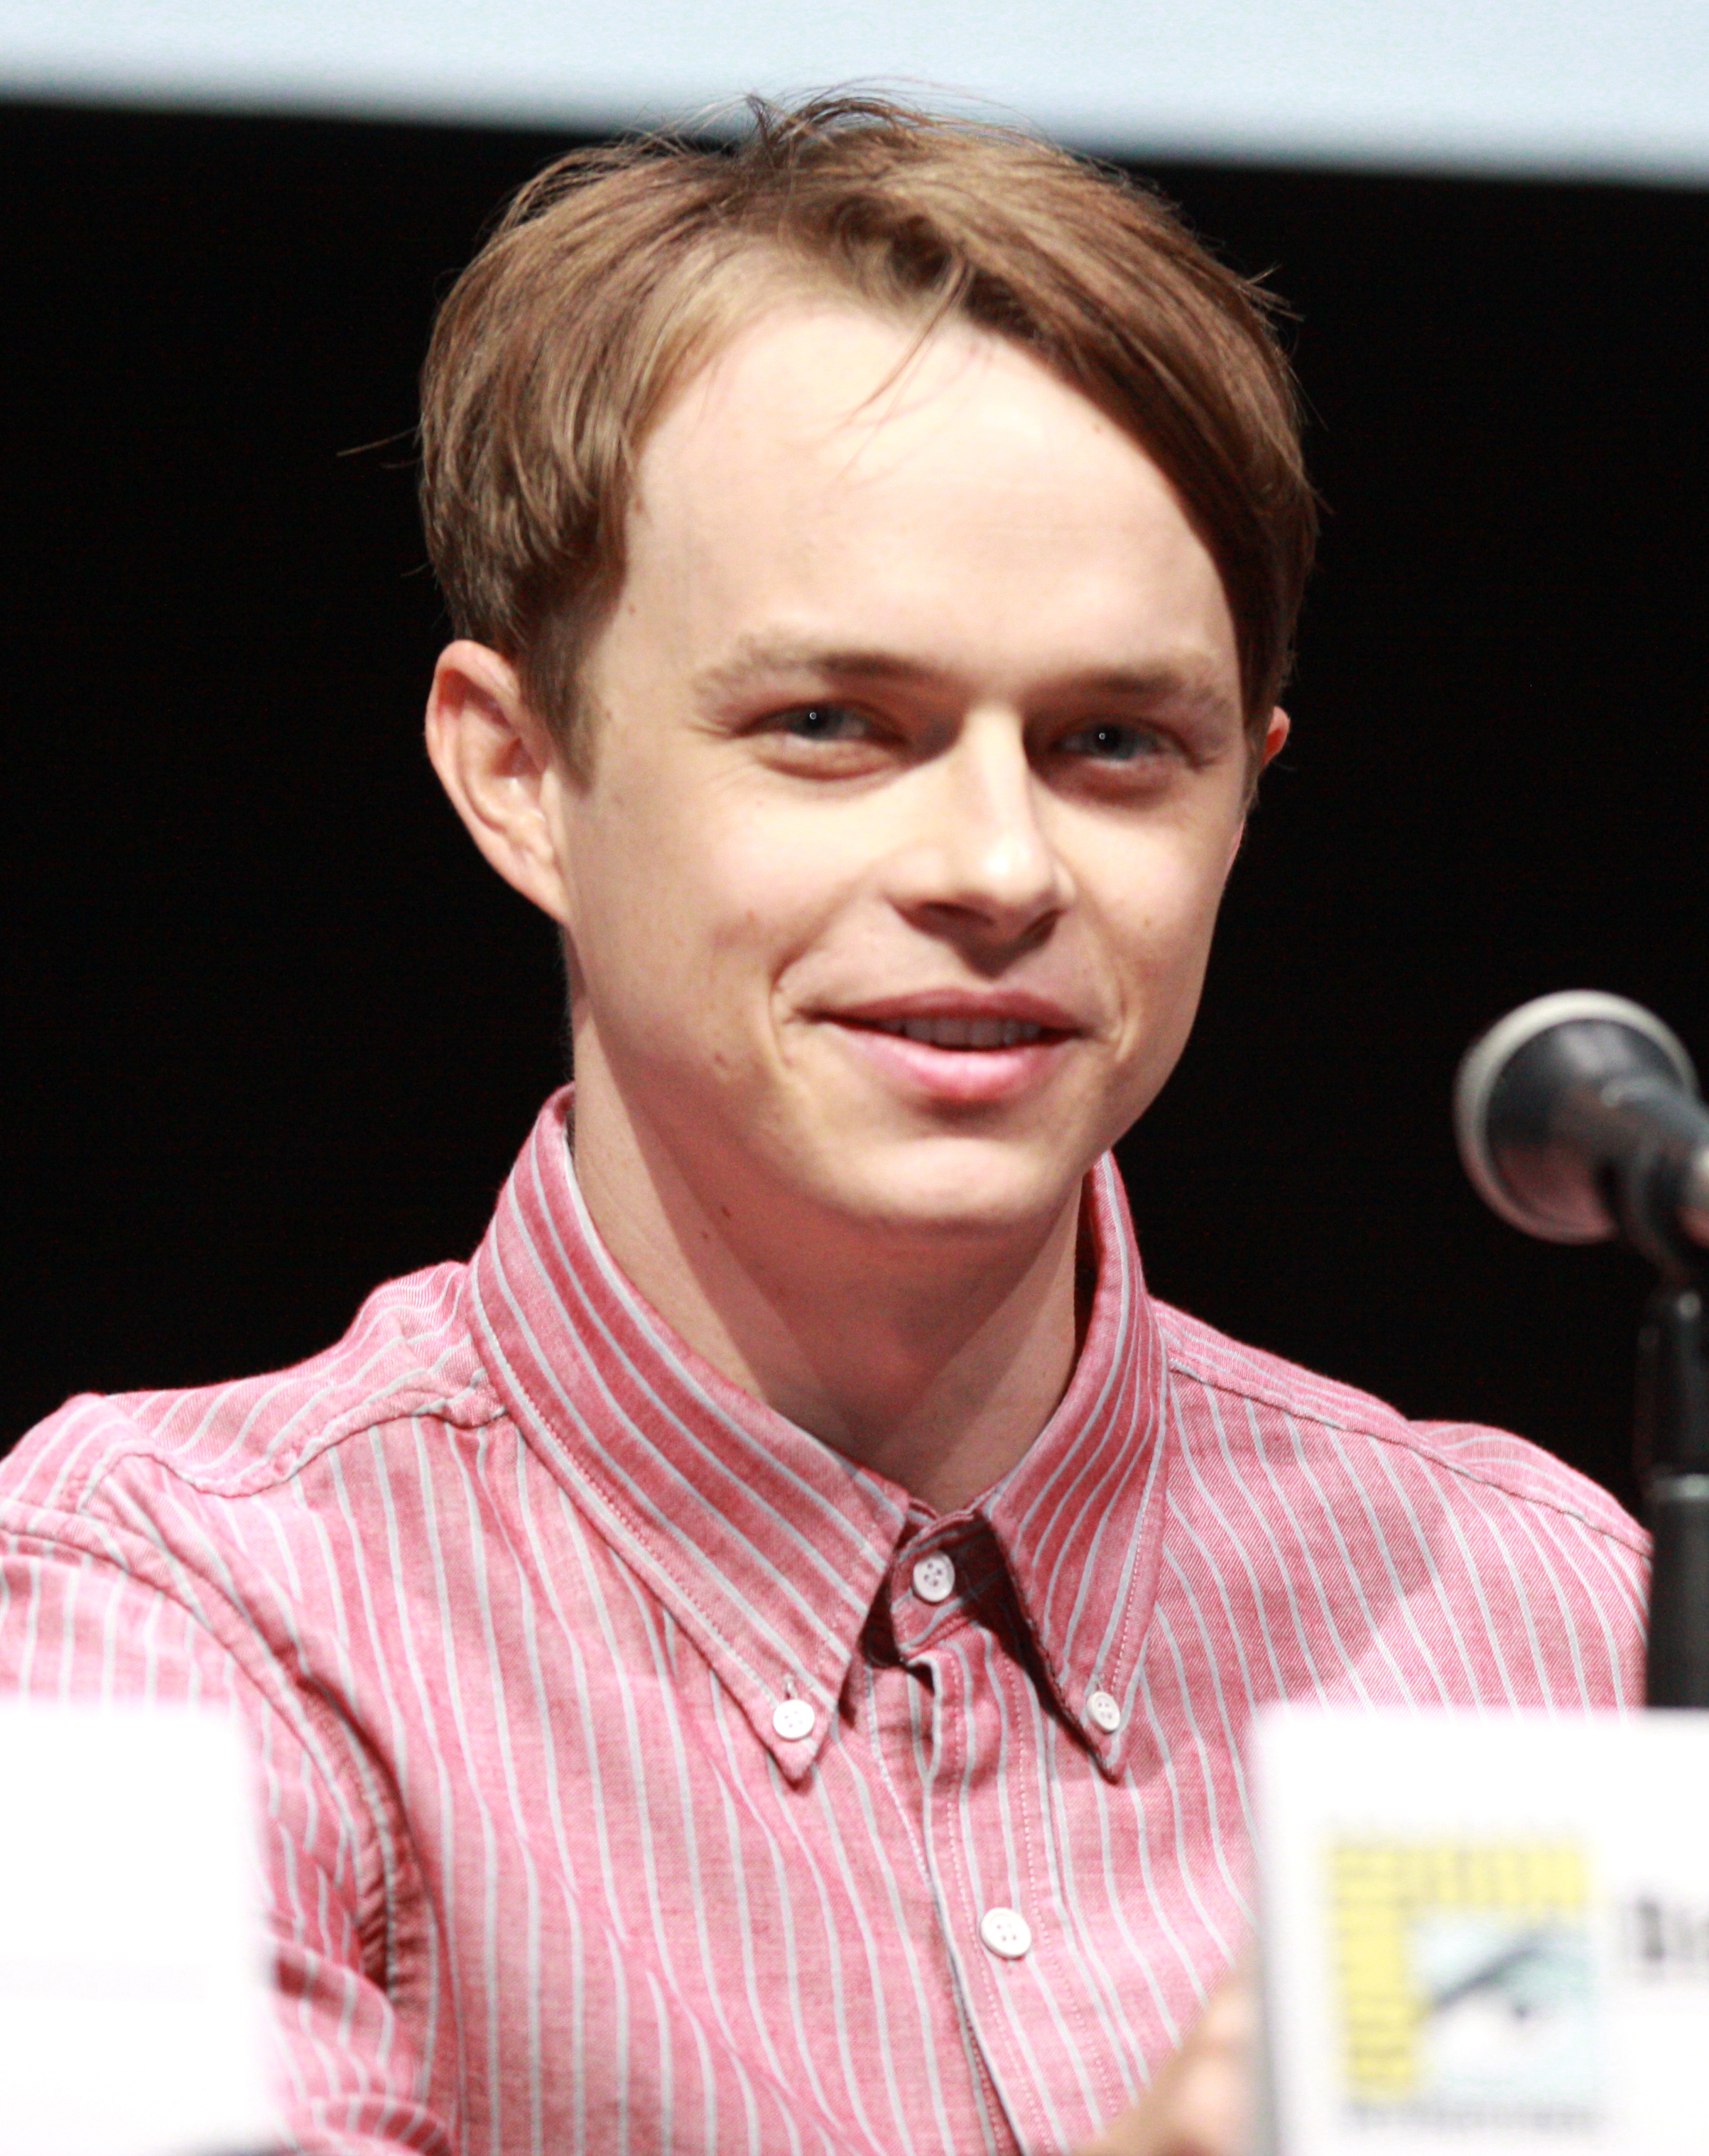 The 33-year old son of father Jeff and mother Cynthia Boscia Dane DeHaan in 2019 photo. Dane DeHaan earned a 0.5 million dollar salary - leaving the net worth at 2 million in 2019